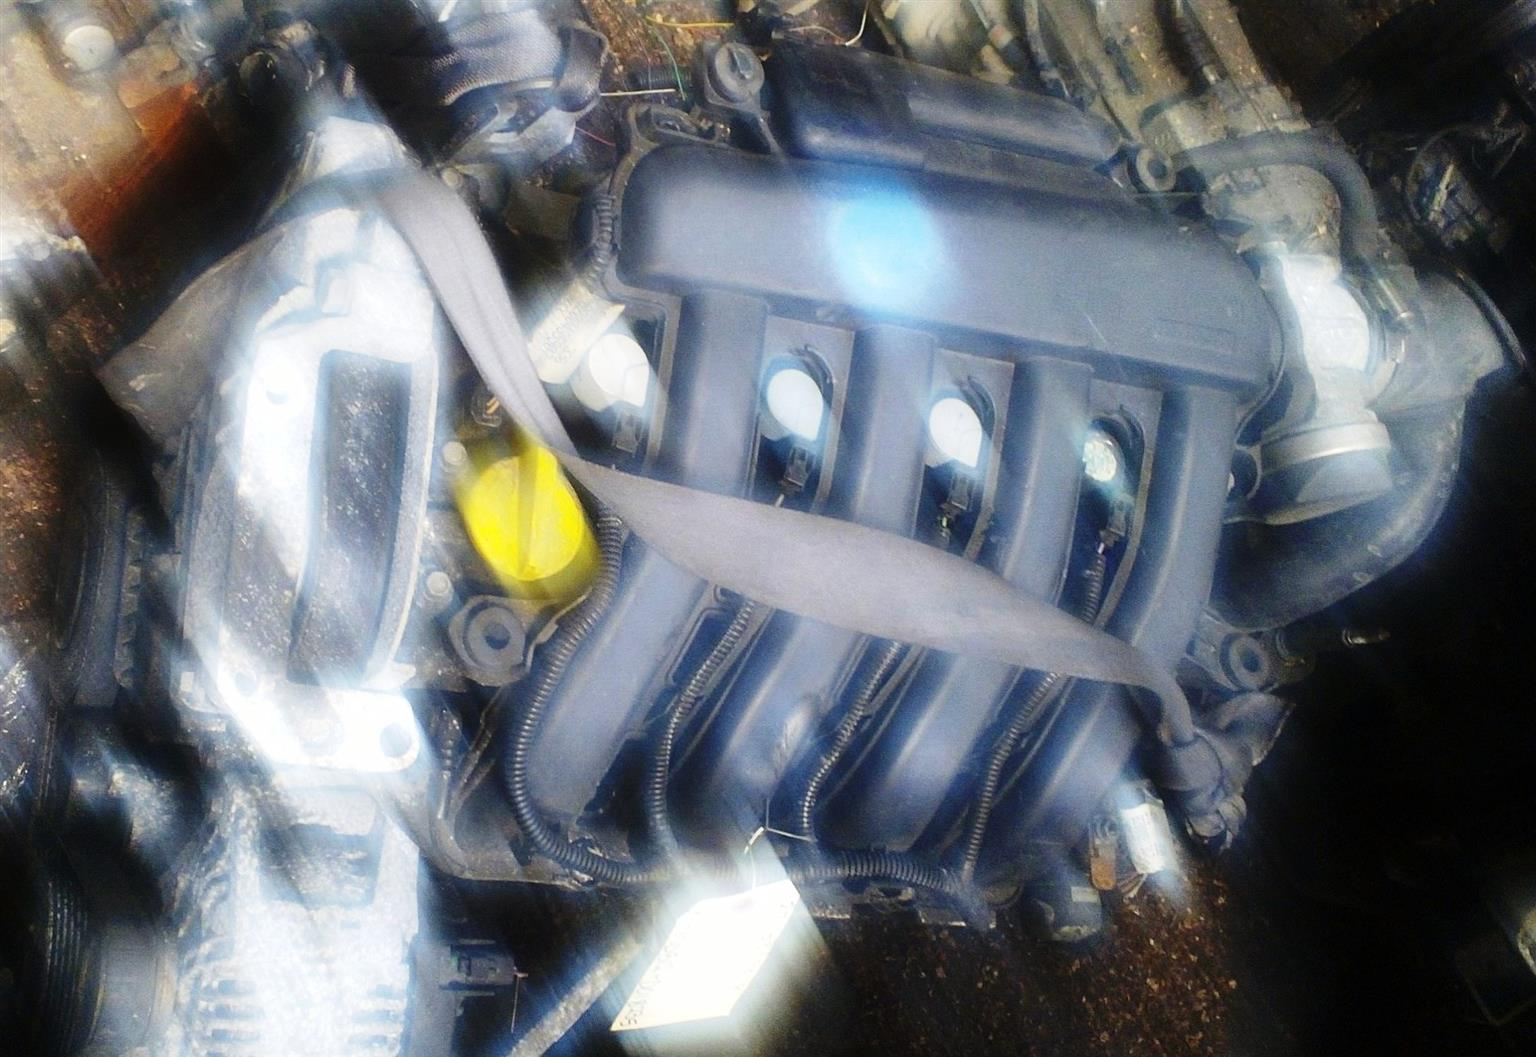 RENAULT 3L V6 / KANGO COMPLETE ENGINE SALE. CALL 012 323 9786 CELL/WHATSAPP 060 395 3079